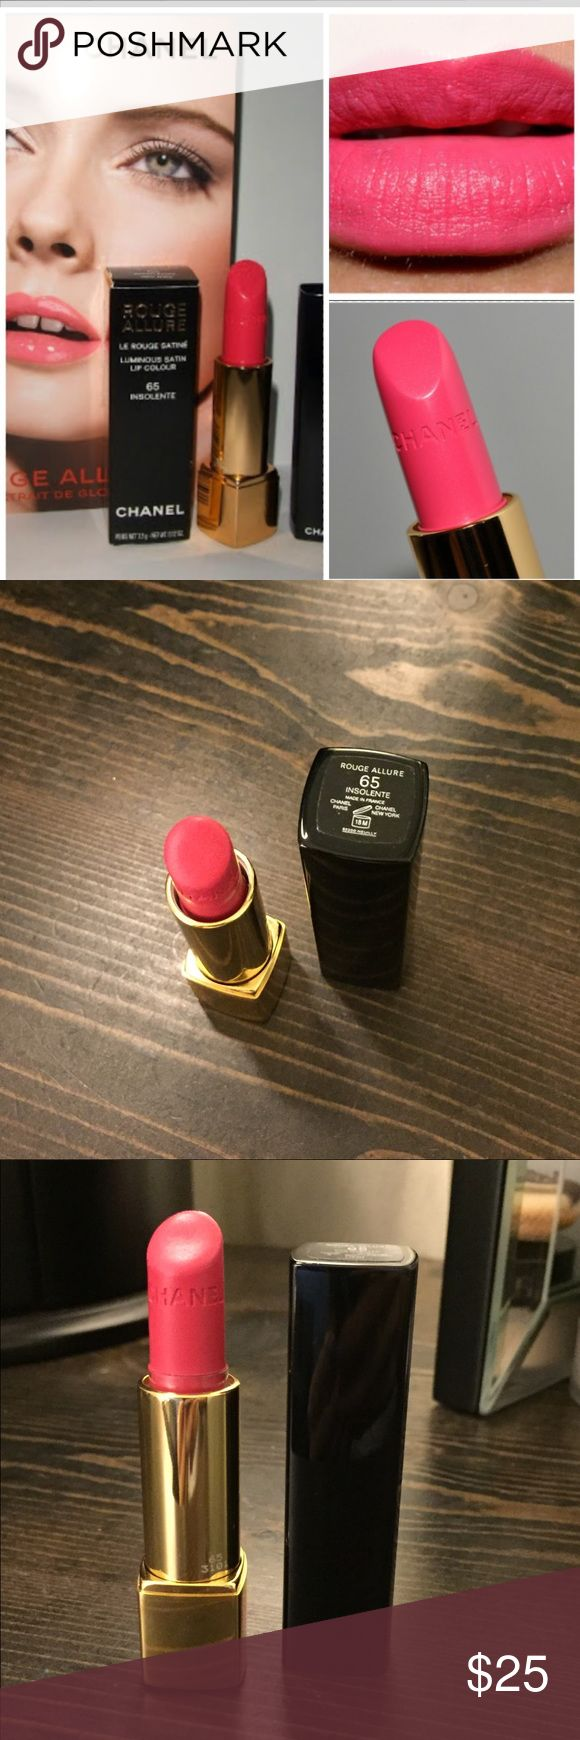 """Chanel Rouge Allure """"Insolente"""" lipstick 90% left! This is the push spring technology for opening the tube. More matte finish, long wear CHANEL Makeup Lipstick"""